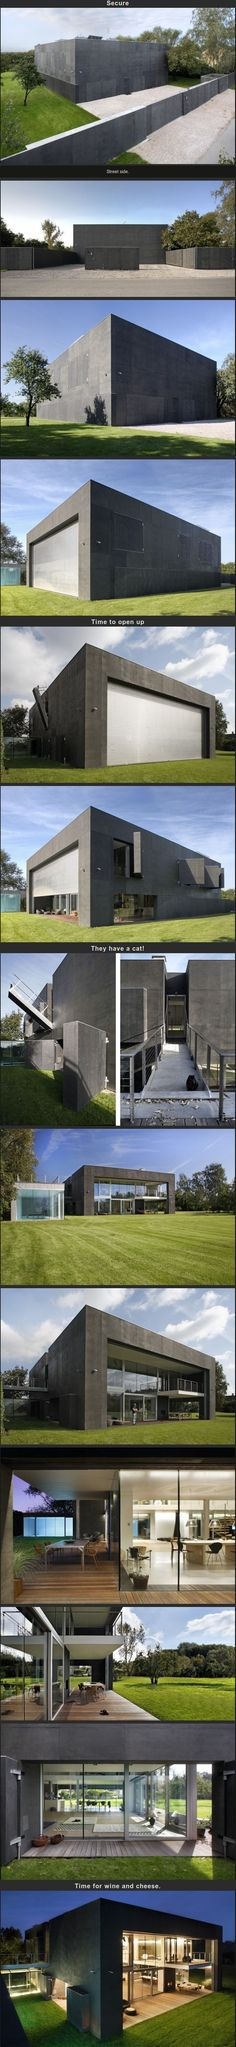 Best house for a zombie apocalypse survival ever